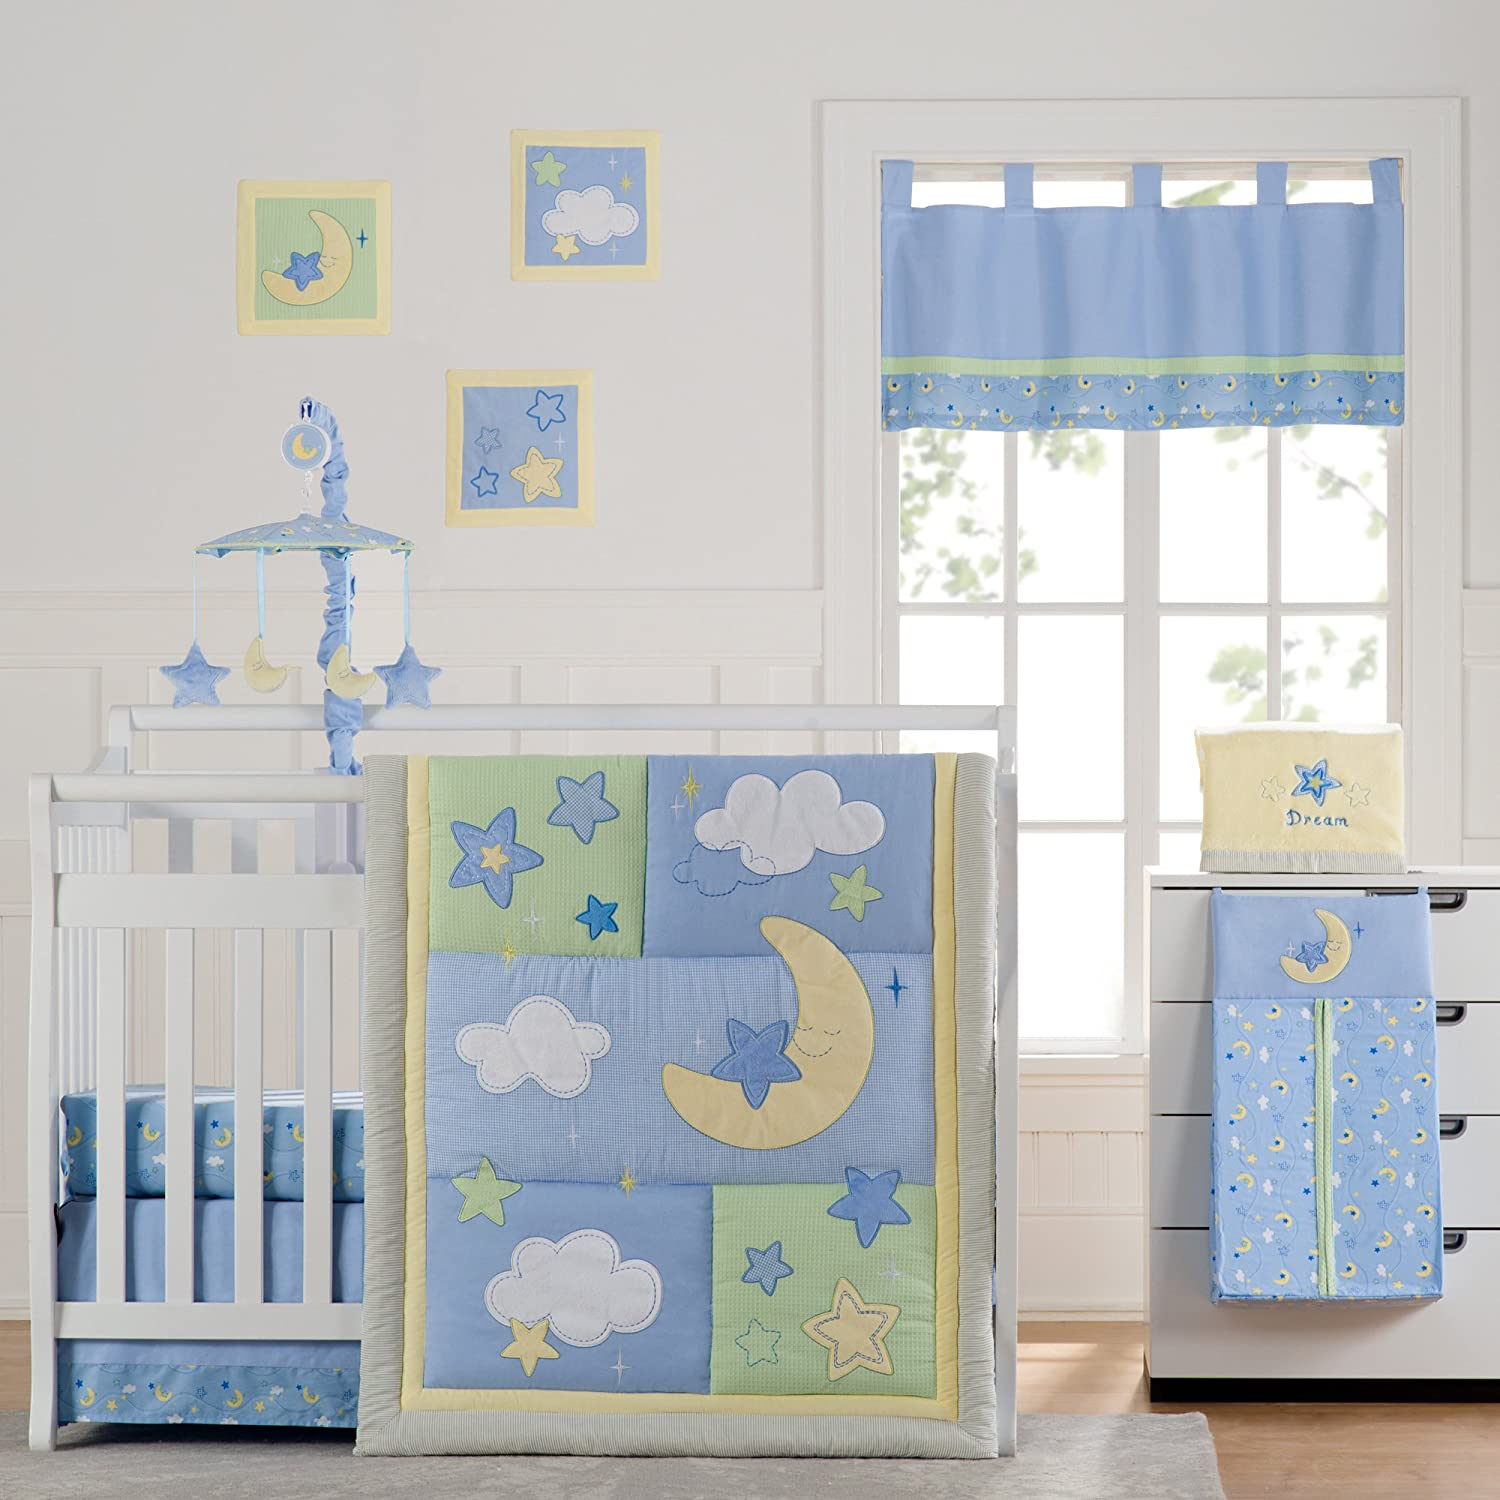 Wish I May Quintessential Cotton quilted 10 Piece Crib Bedding Set by Laugh, Giggle & Smile   B009L3JRTM